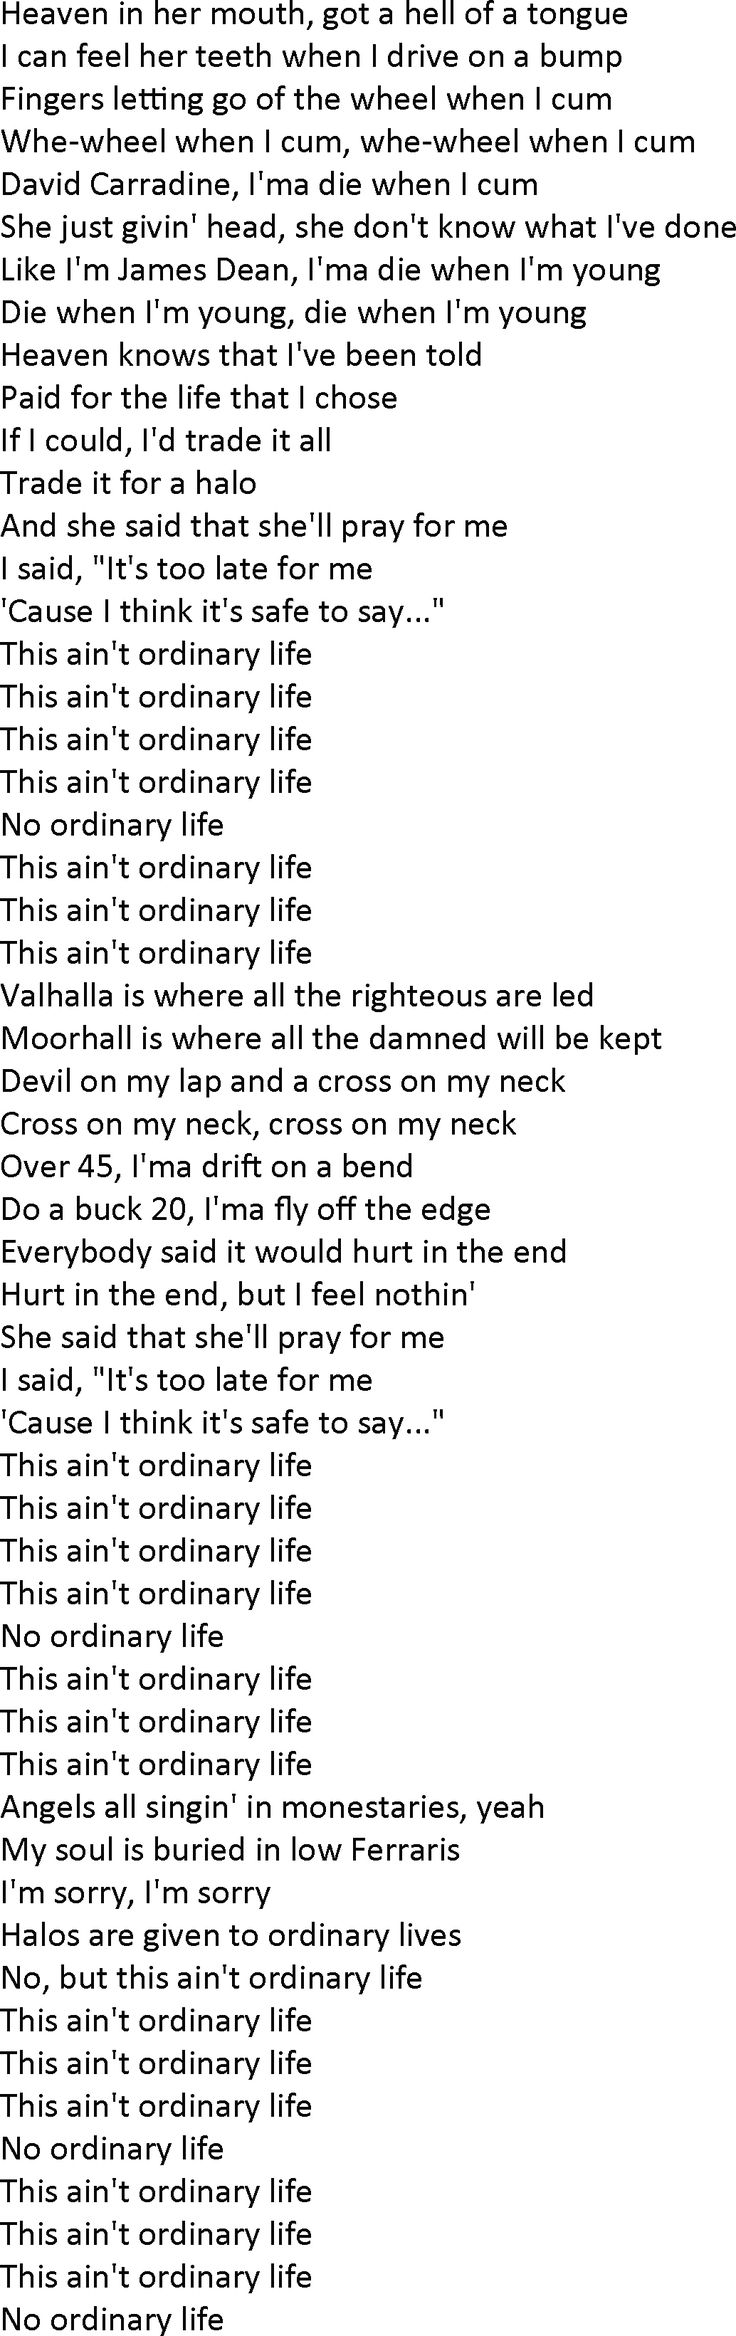 Ordinary Life, a song by The Weeknd